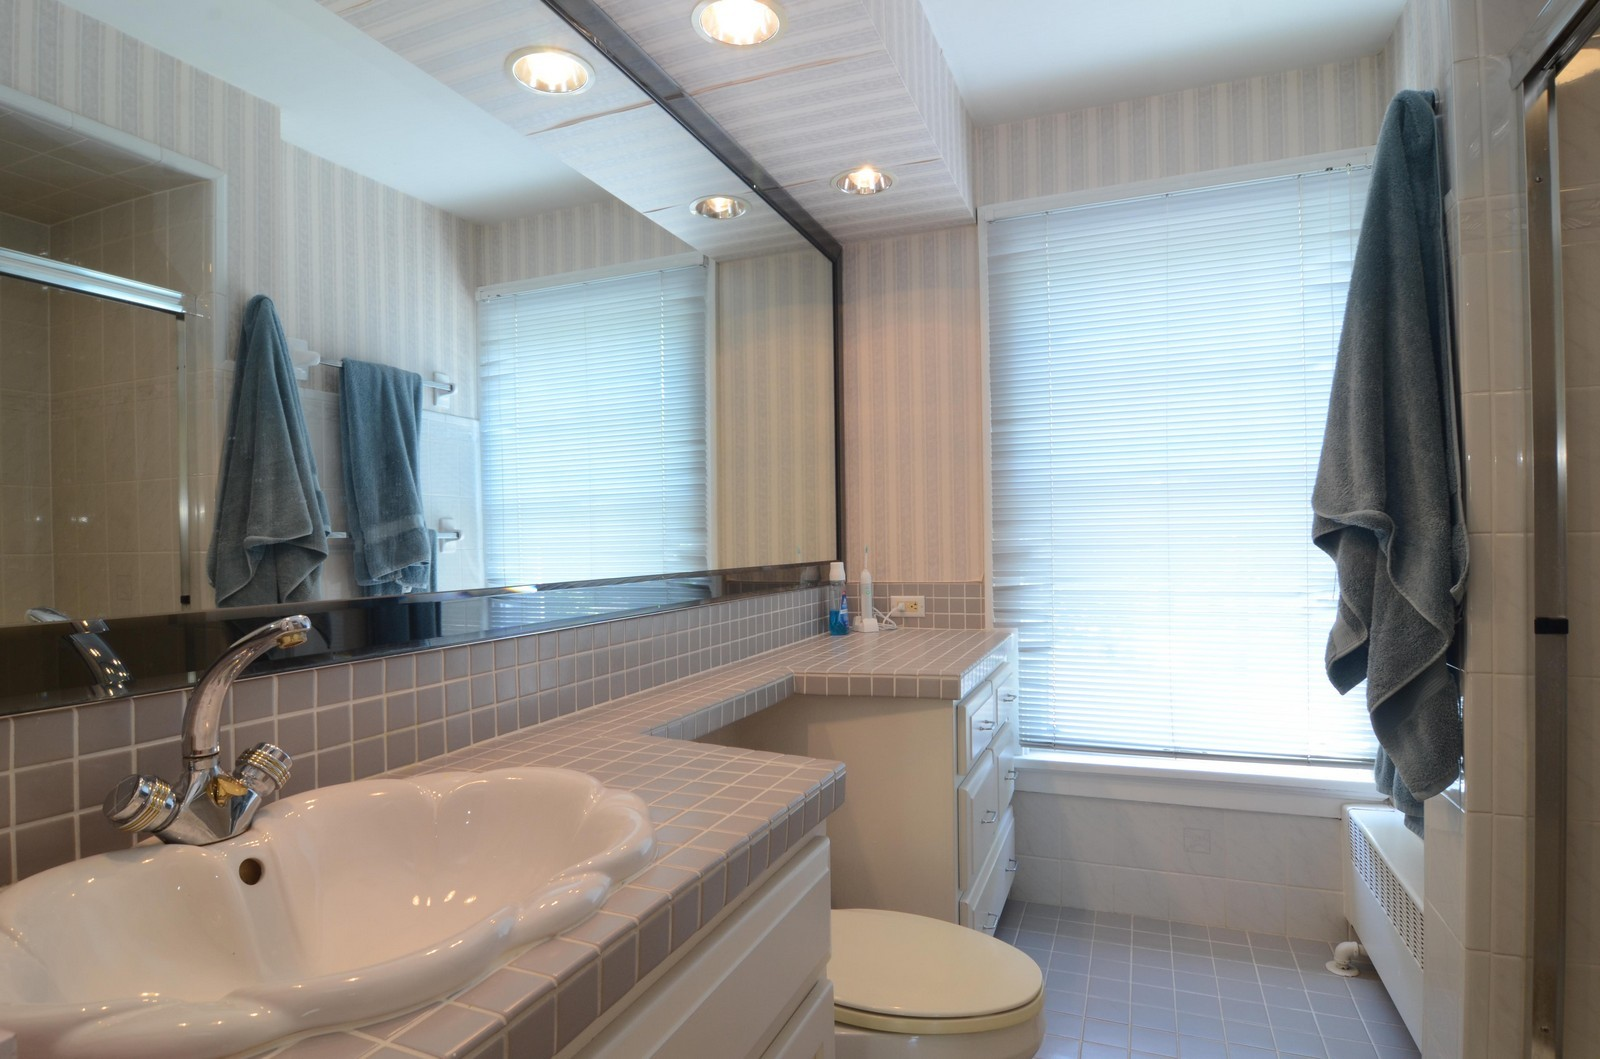 Real Estate Photography - 3444 N Hackett Ave, Milwaukee, WI, 53211 - Bathroom